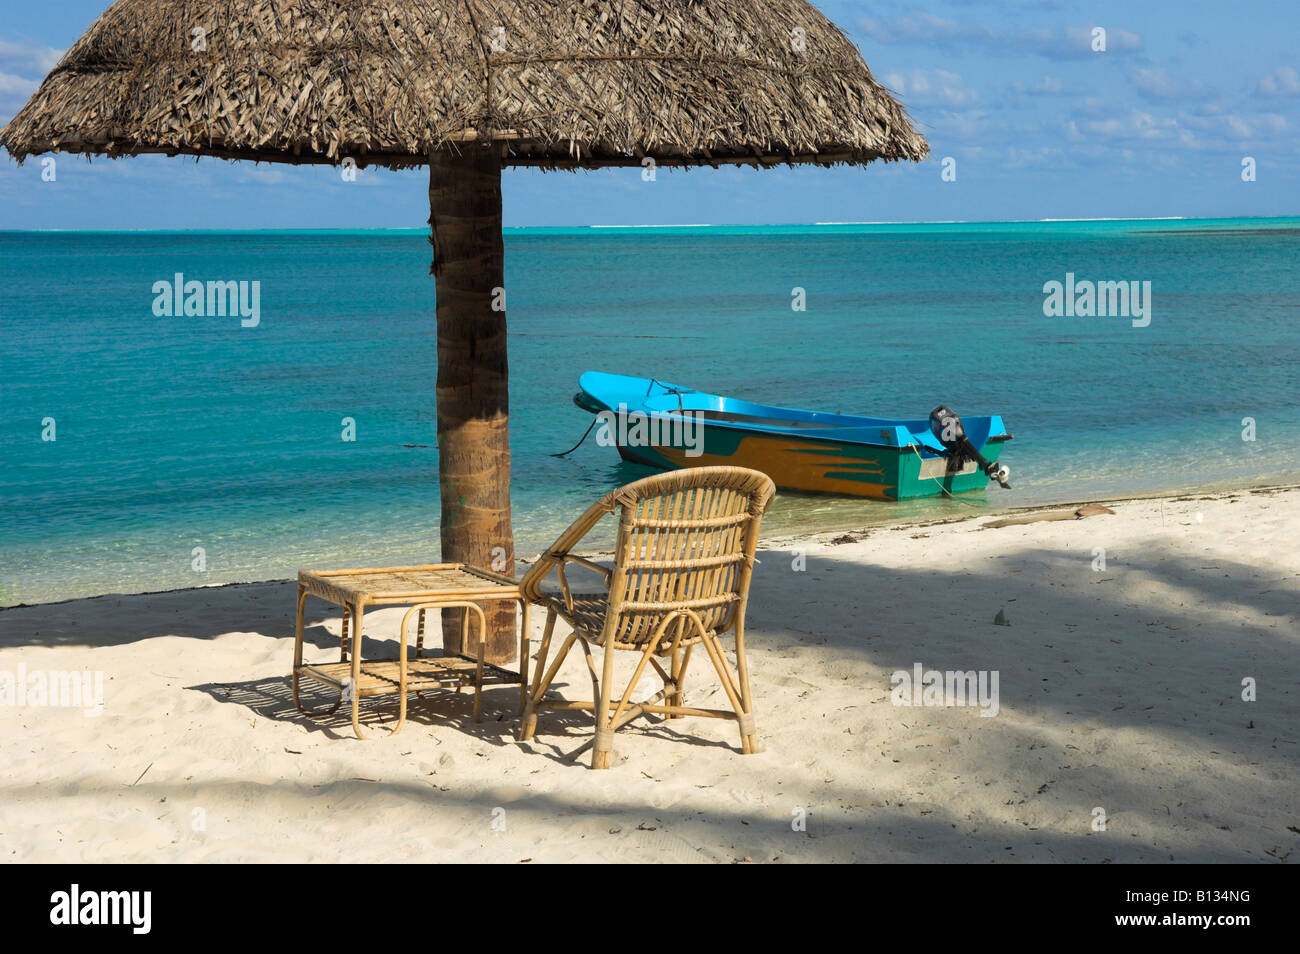 Thatched Beach Umbrella Empty Rattan Chair And Table With Boat On Tropical  Turquoise Blue Sea